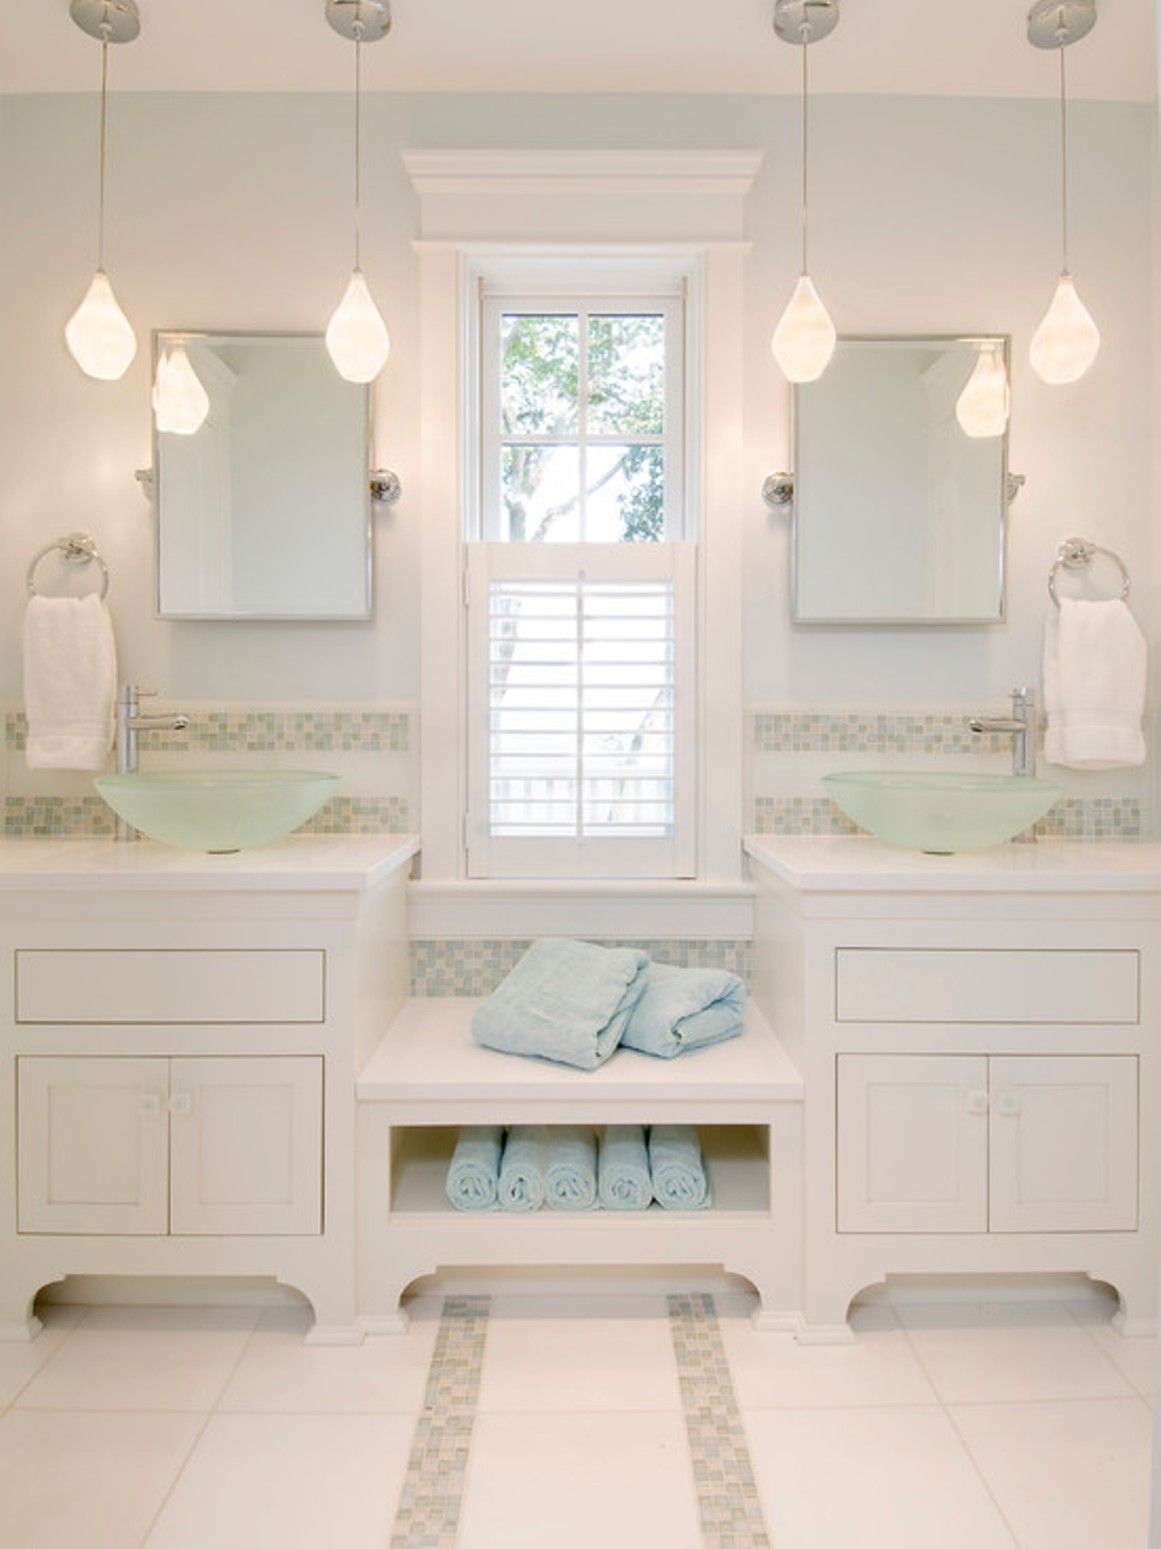 Bathroom Vanity Pendant Lighting best pendant lighting bathroom vanity for awesome nuance : white